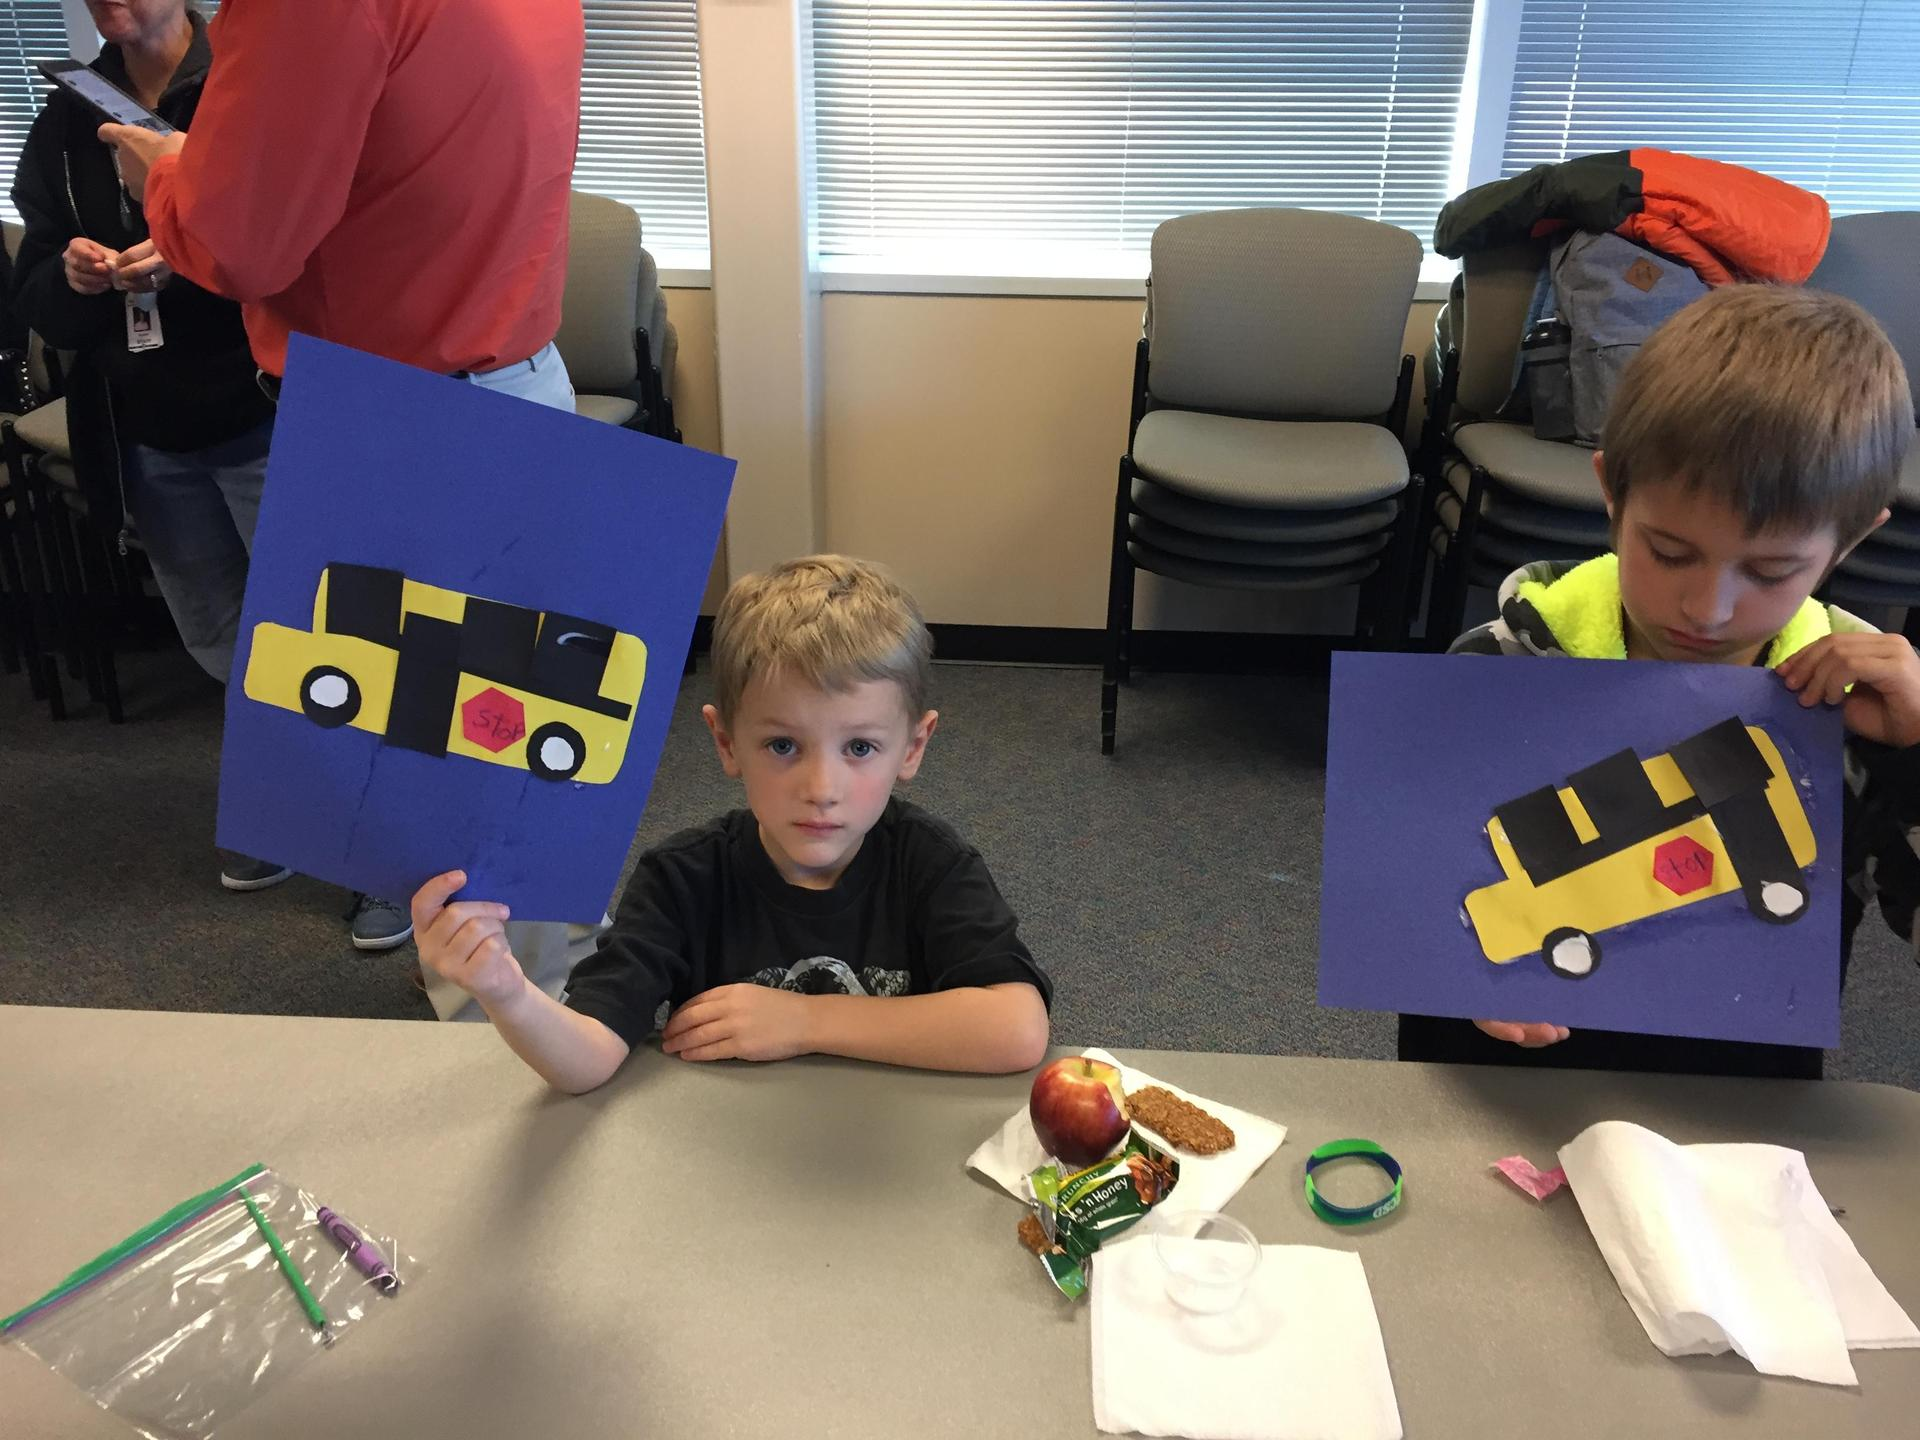 Northlake first grade creates buses after their tour of the district office